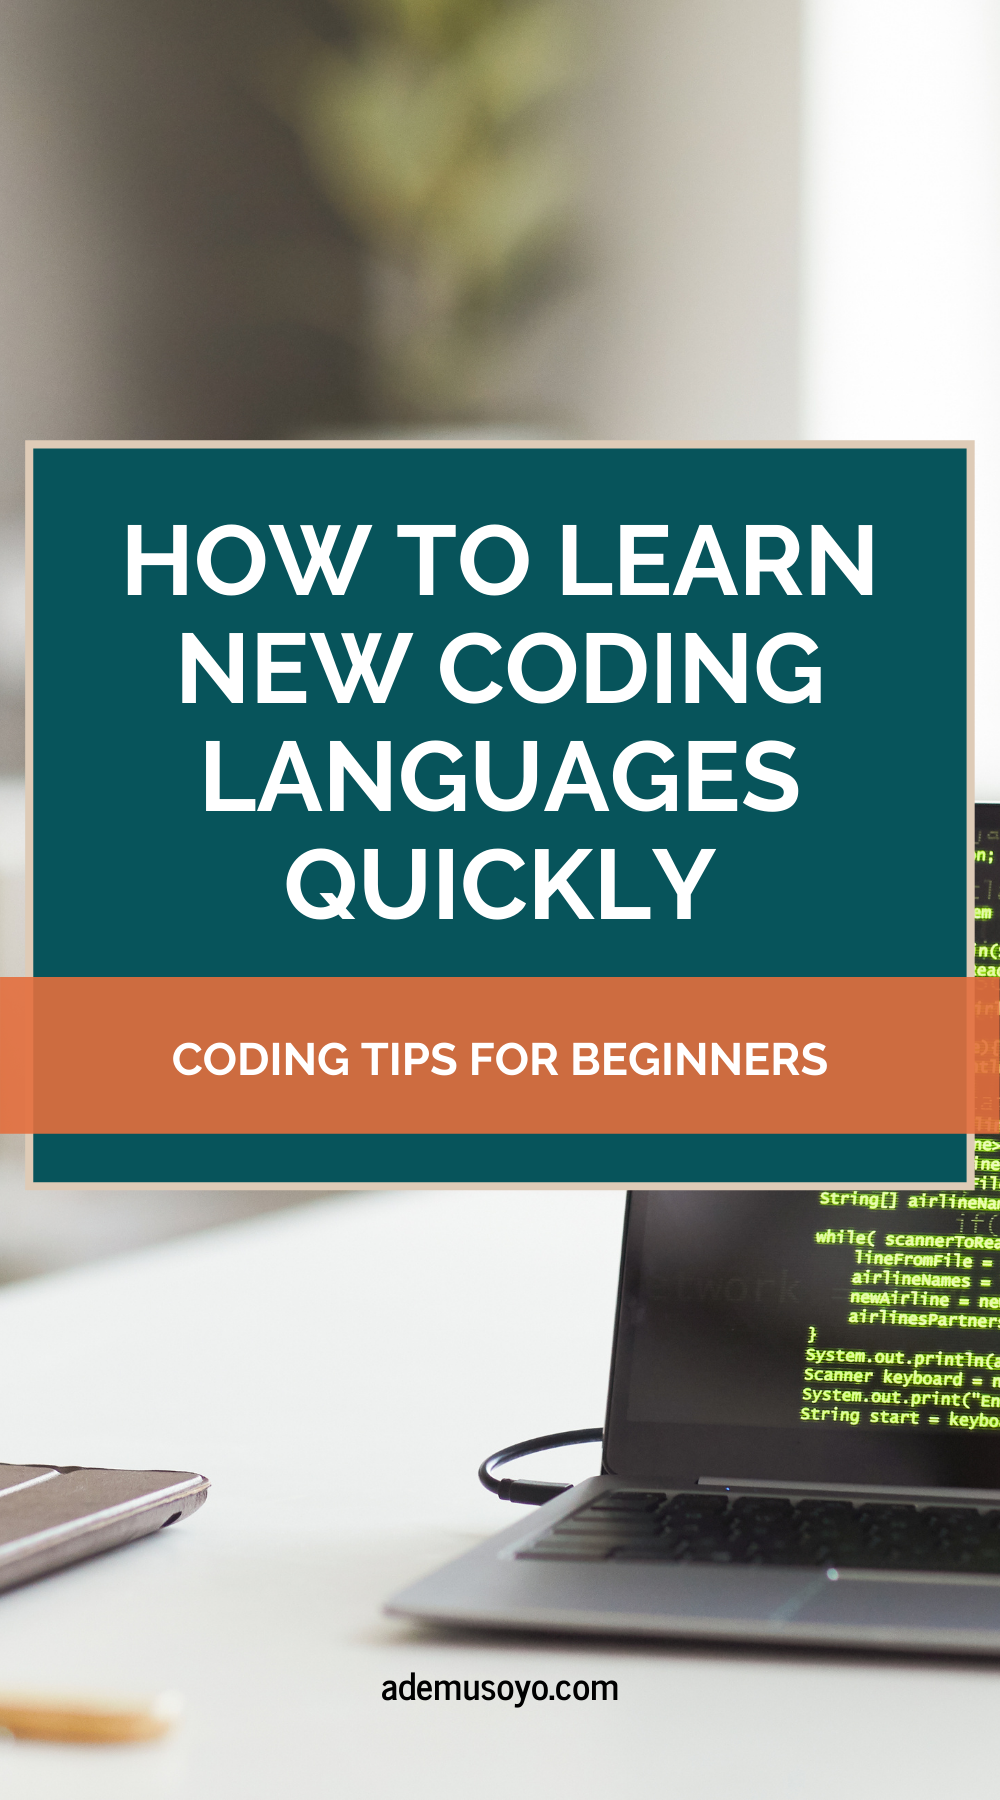 How to learn new coding languages quickly